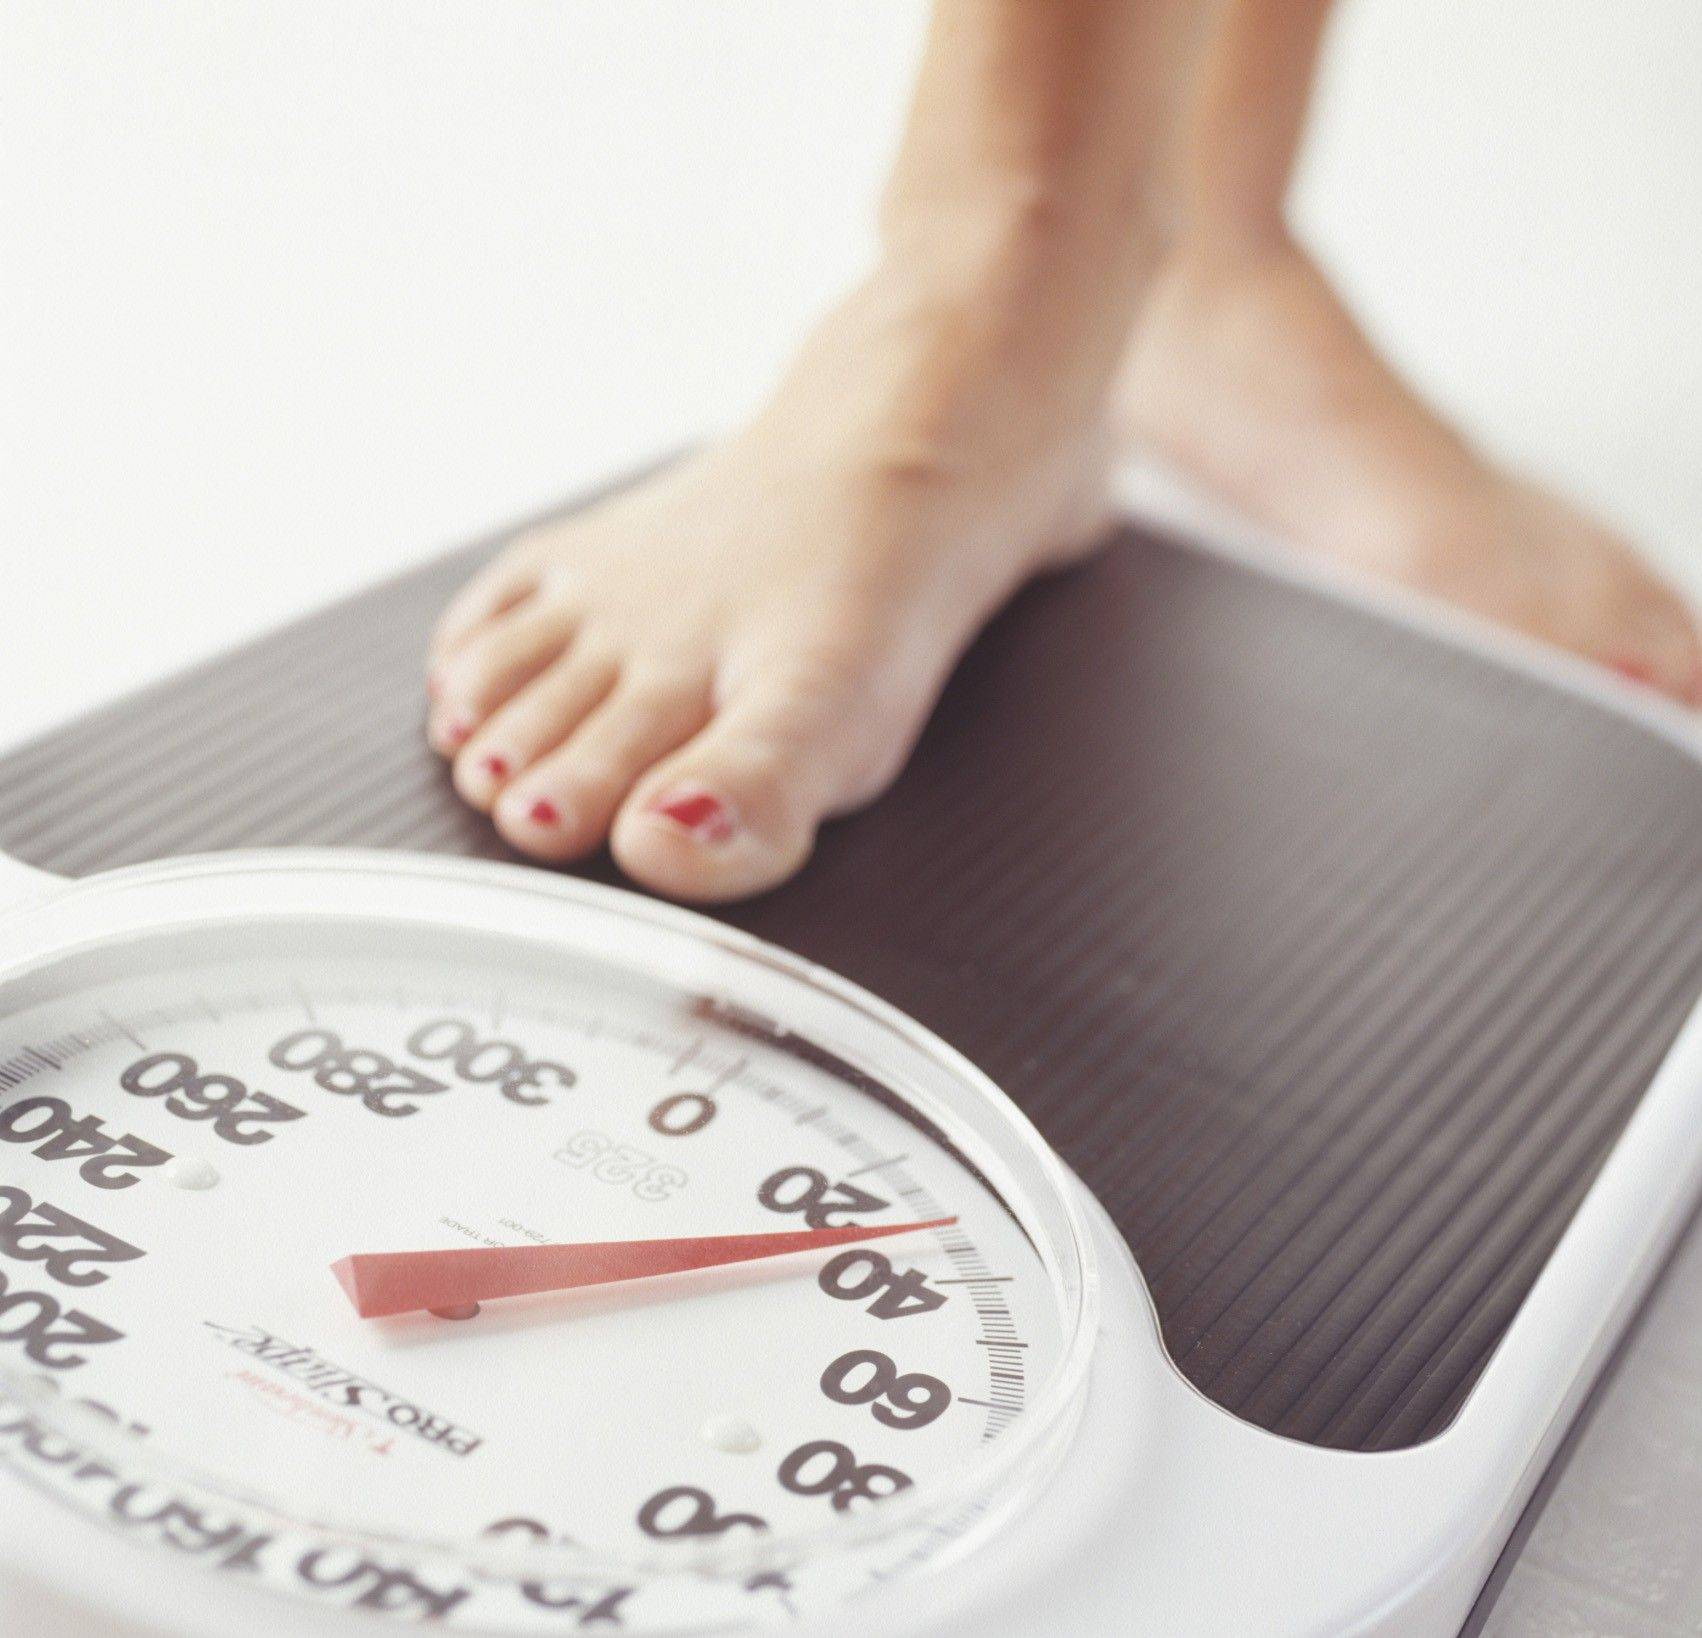 Effective weight loss takes time, experts say.